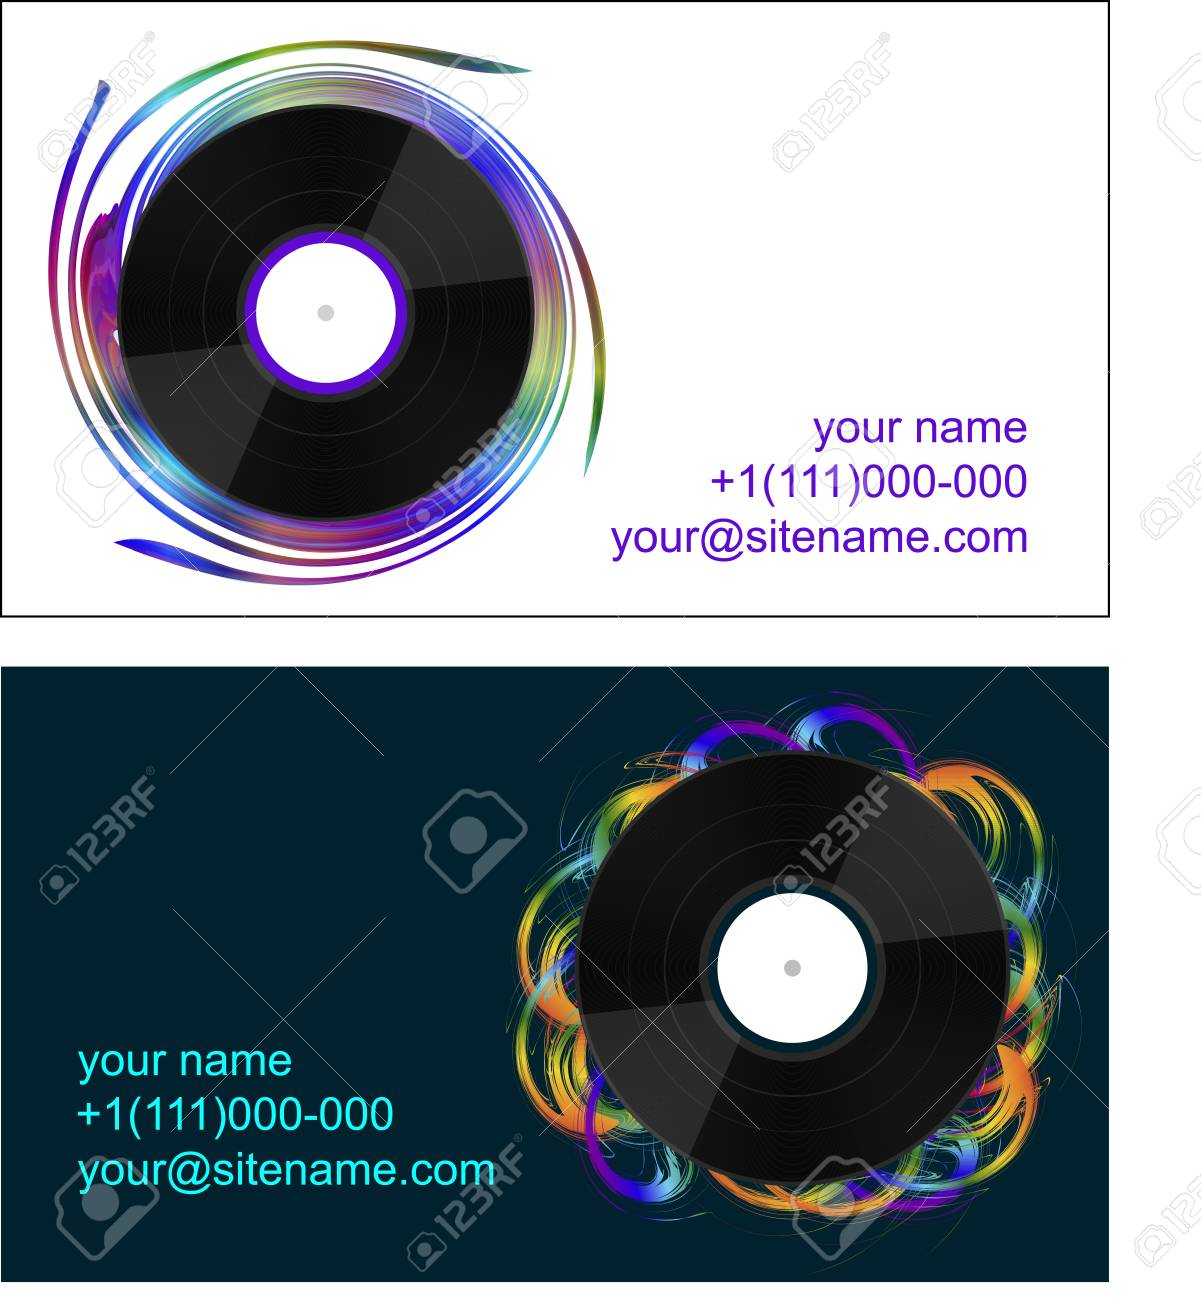 Business Cards With Vinyl Records On Abstract Background Royalty ...